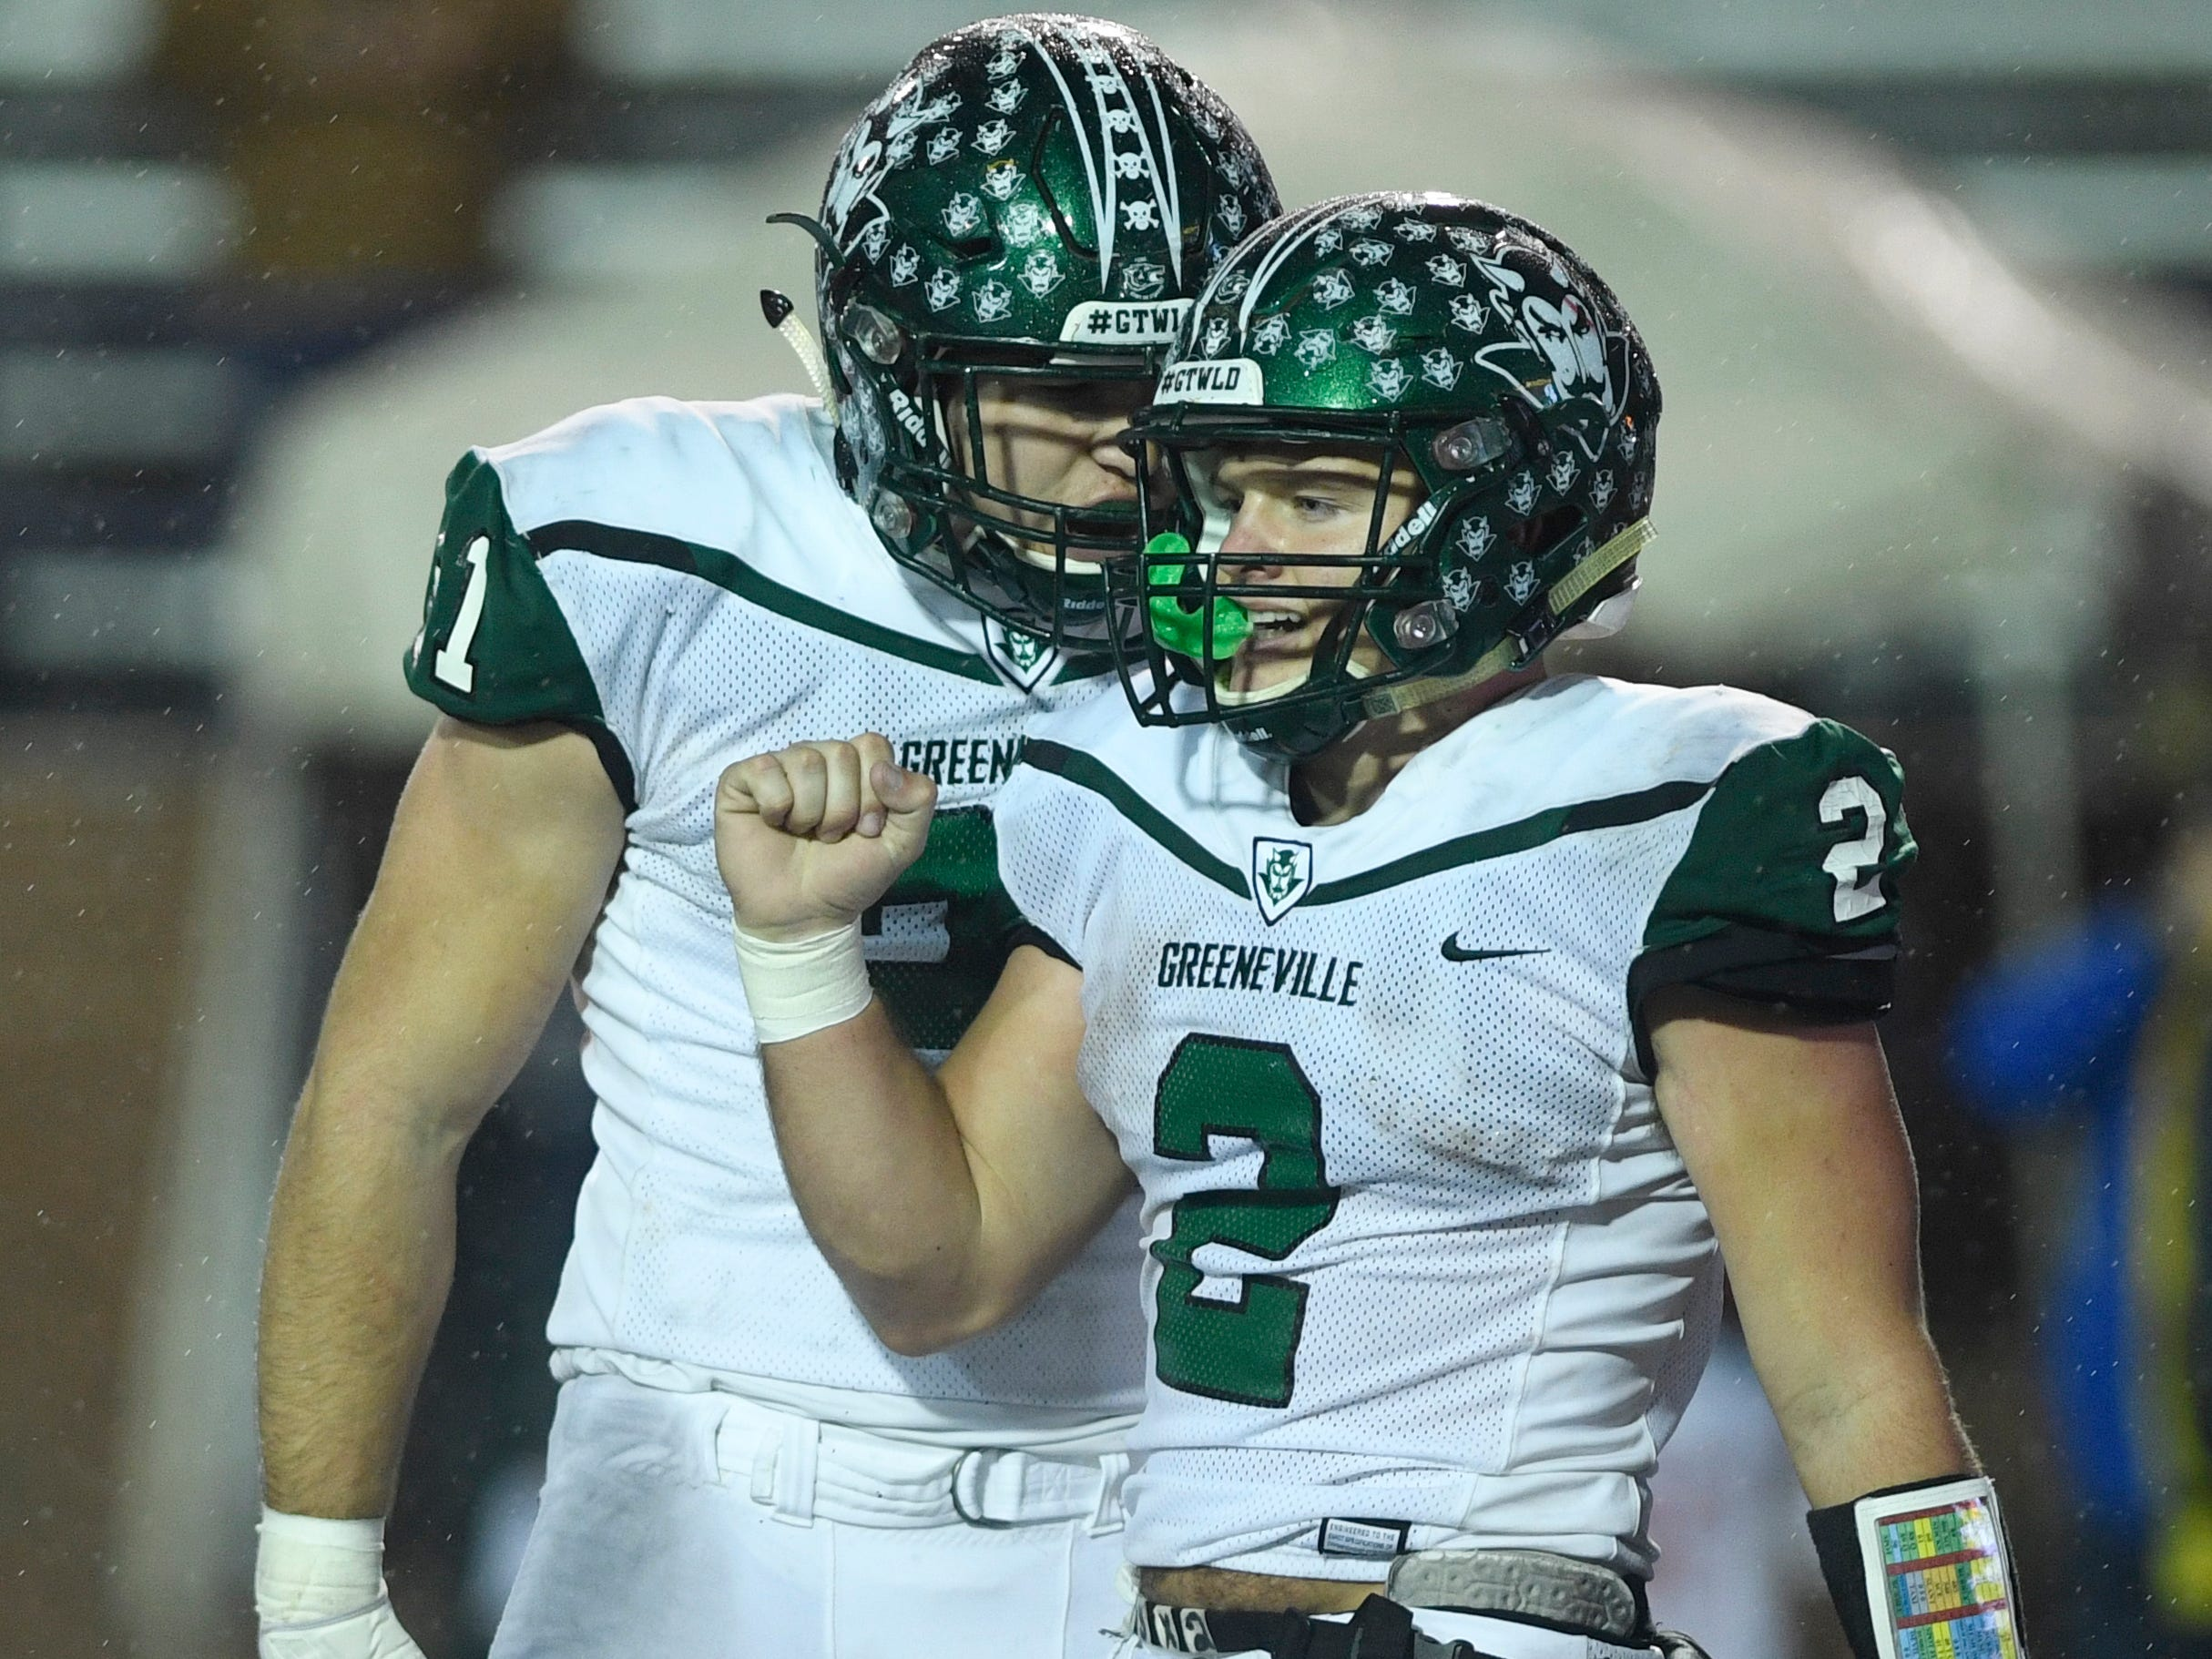 Greeneville's Cameron Hite (21) yells at Cade Ballard (2) after Ballard scored a touchdown in the second half of the Class 4A BlueCross Bowl state championship at Tennessee Tech's Tucker Stadium in Cookeville, Tenn., on Thursday, Nov. 29, 2018.